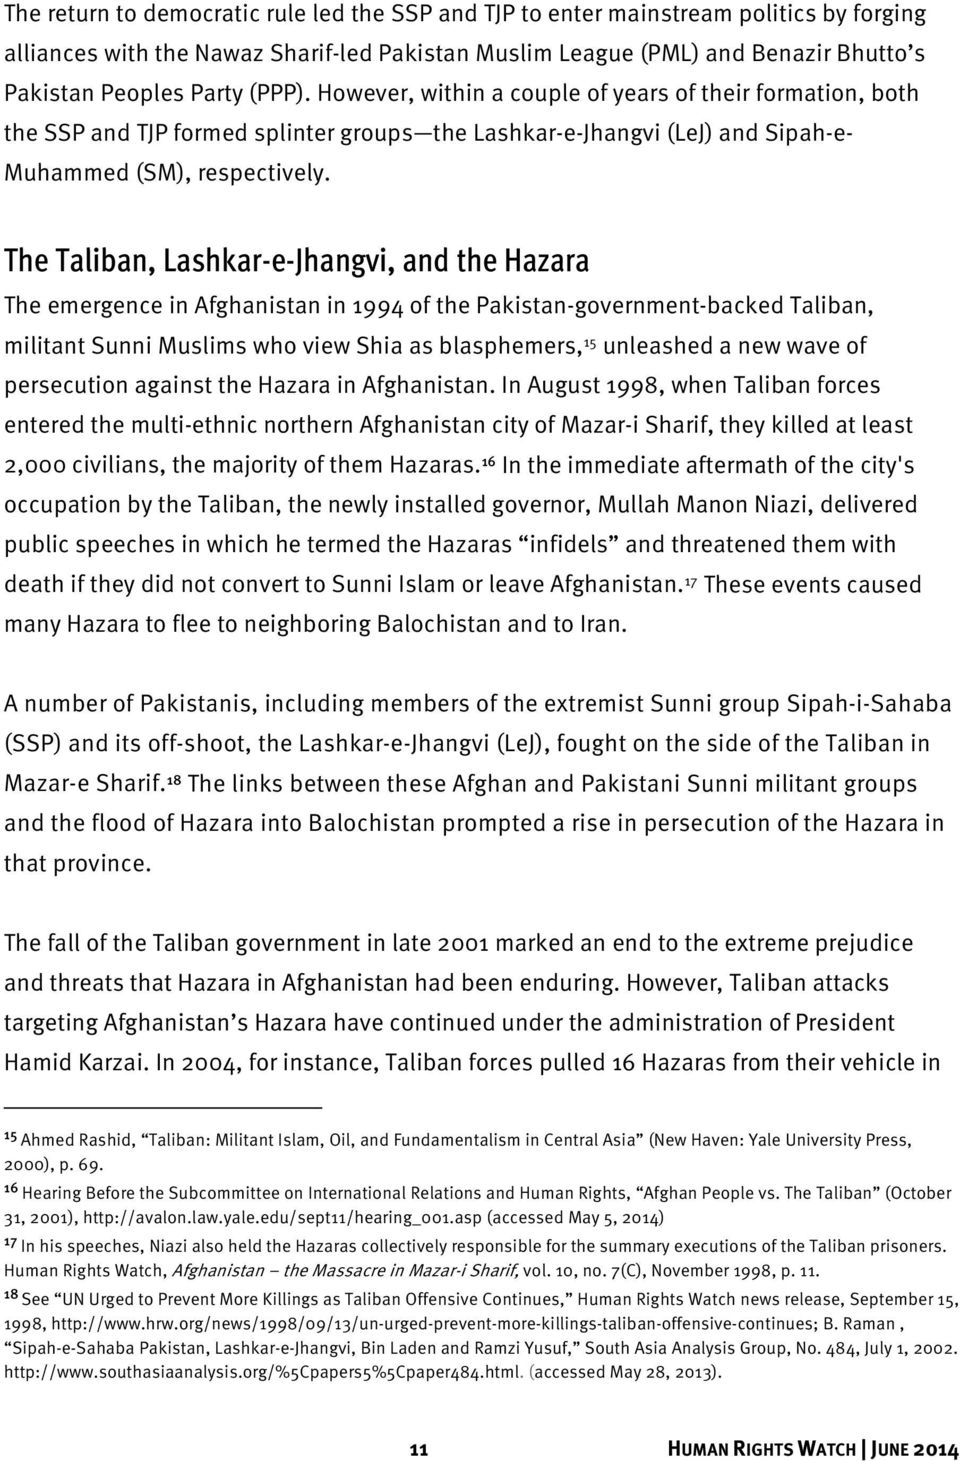 The Taliban, Lashkar-e-Jhangvi, and the Hazara The emergence in Afghanistan in 1994 of the Pakistan-government-backed Taliban, militant Sunni Muslims who view Shia as blasphemers, 15 unleashed a new